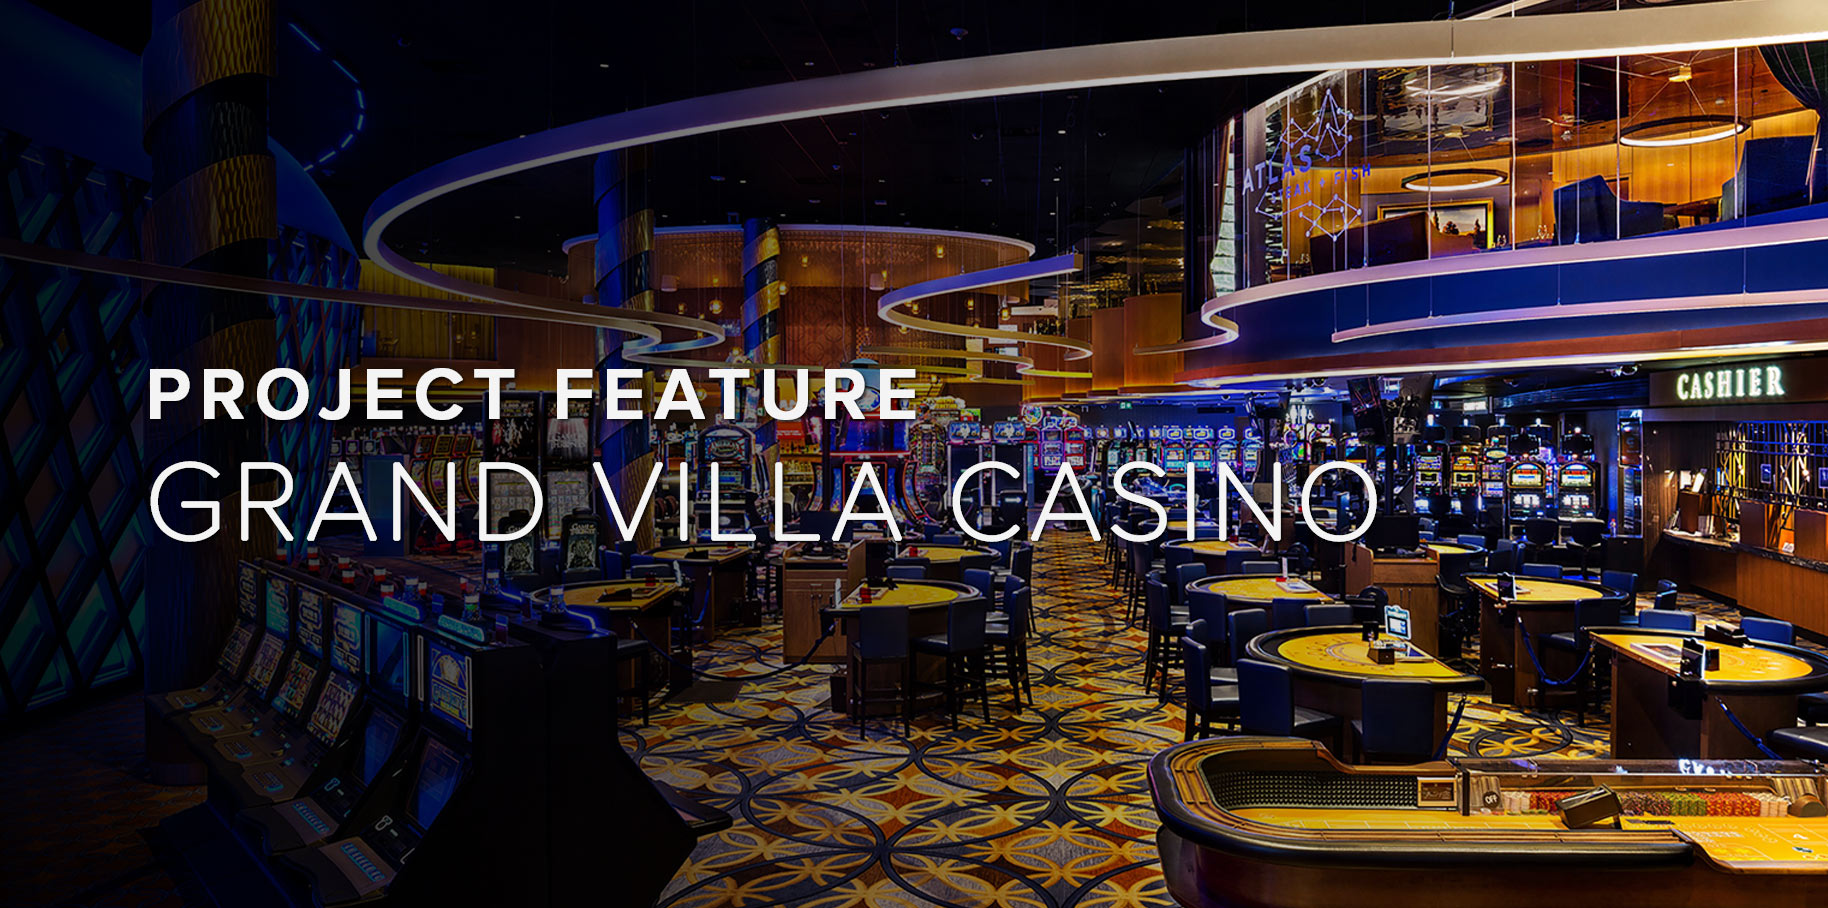 Grand Villa Casino Project